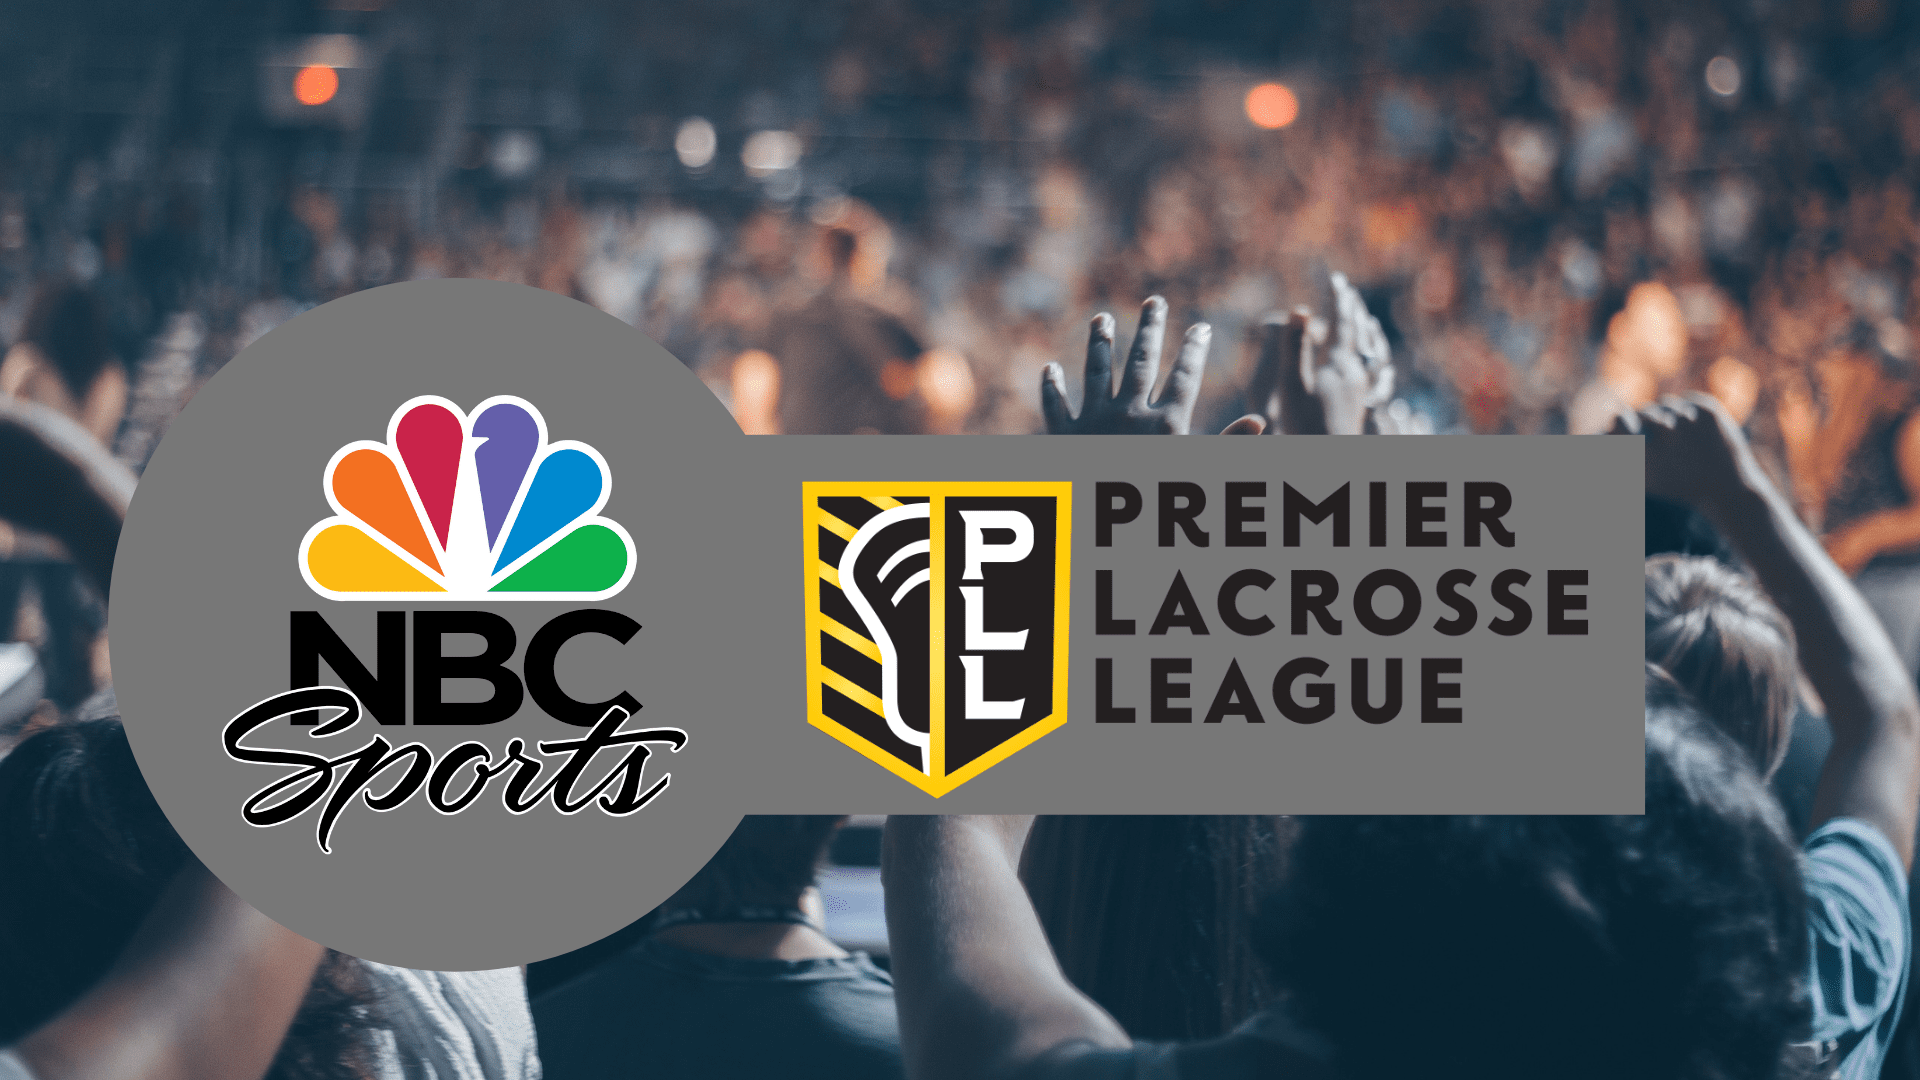 Pll League Pass Available On Nbc Sports Gold Lacrosse All Stars